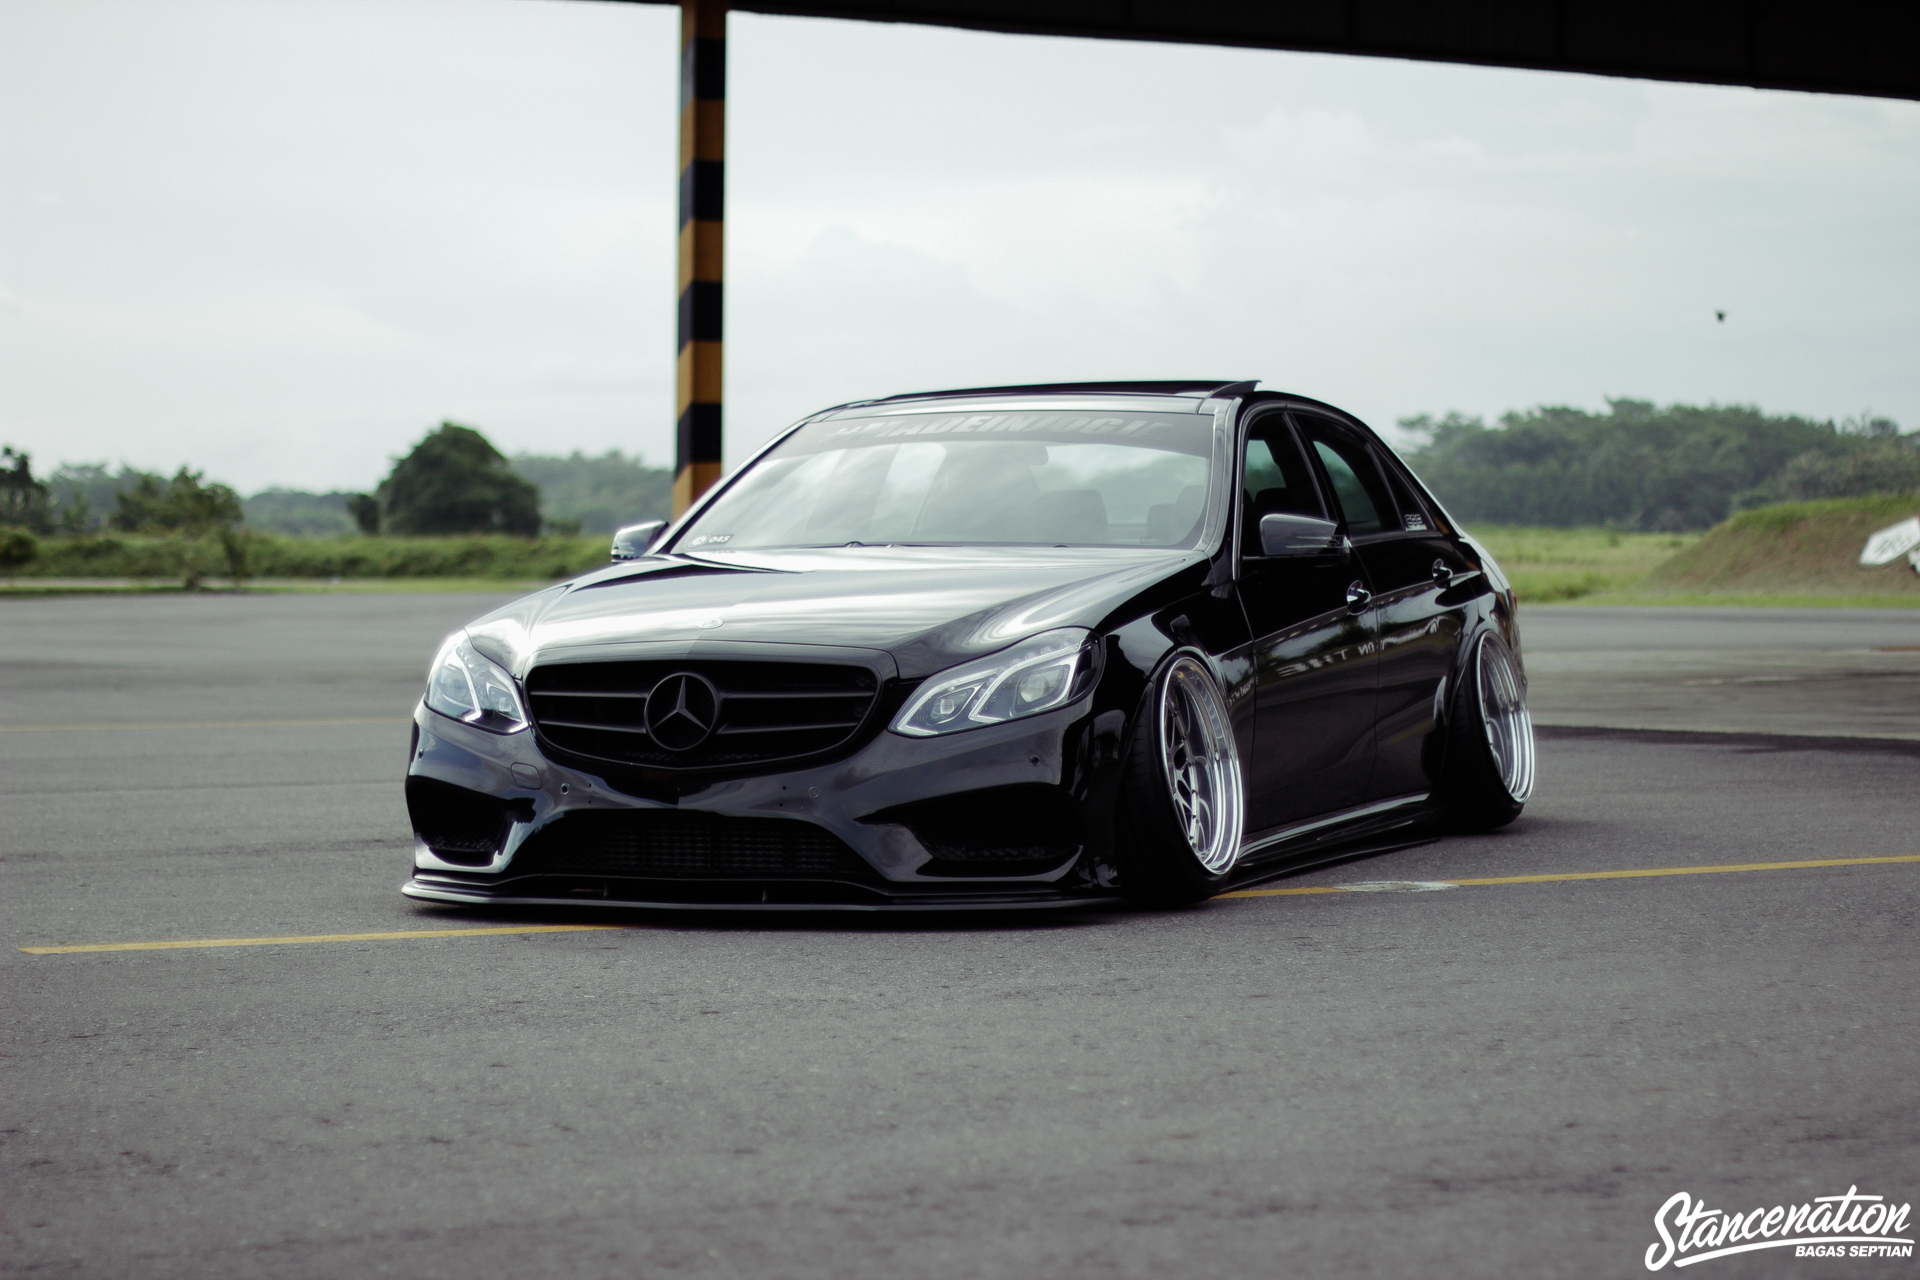 Staying The Course Chandra Kenzo S Mercedes Benz E250